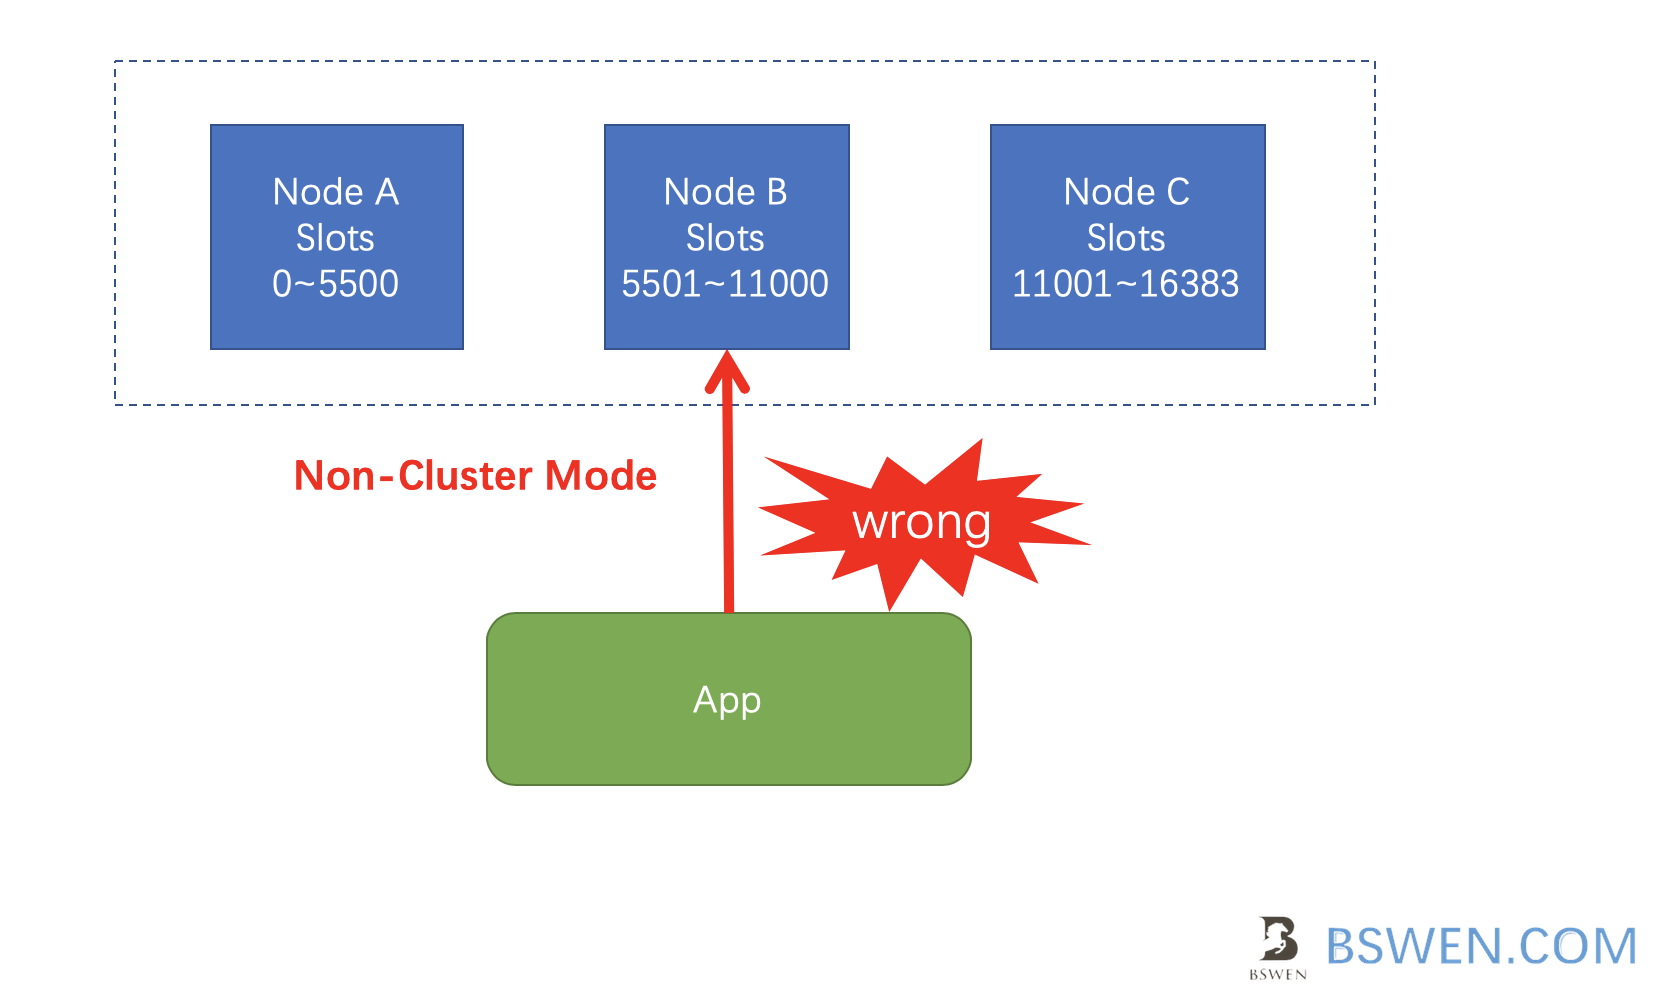 wrong way:connect redis cluster using non-cluster mode